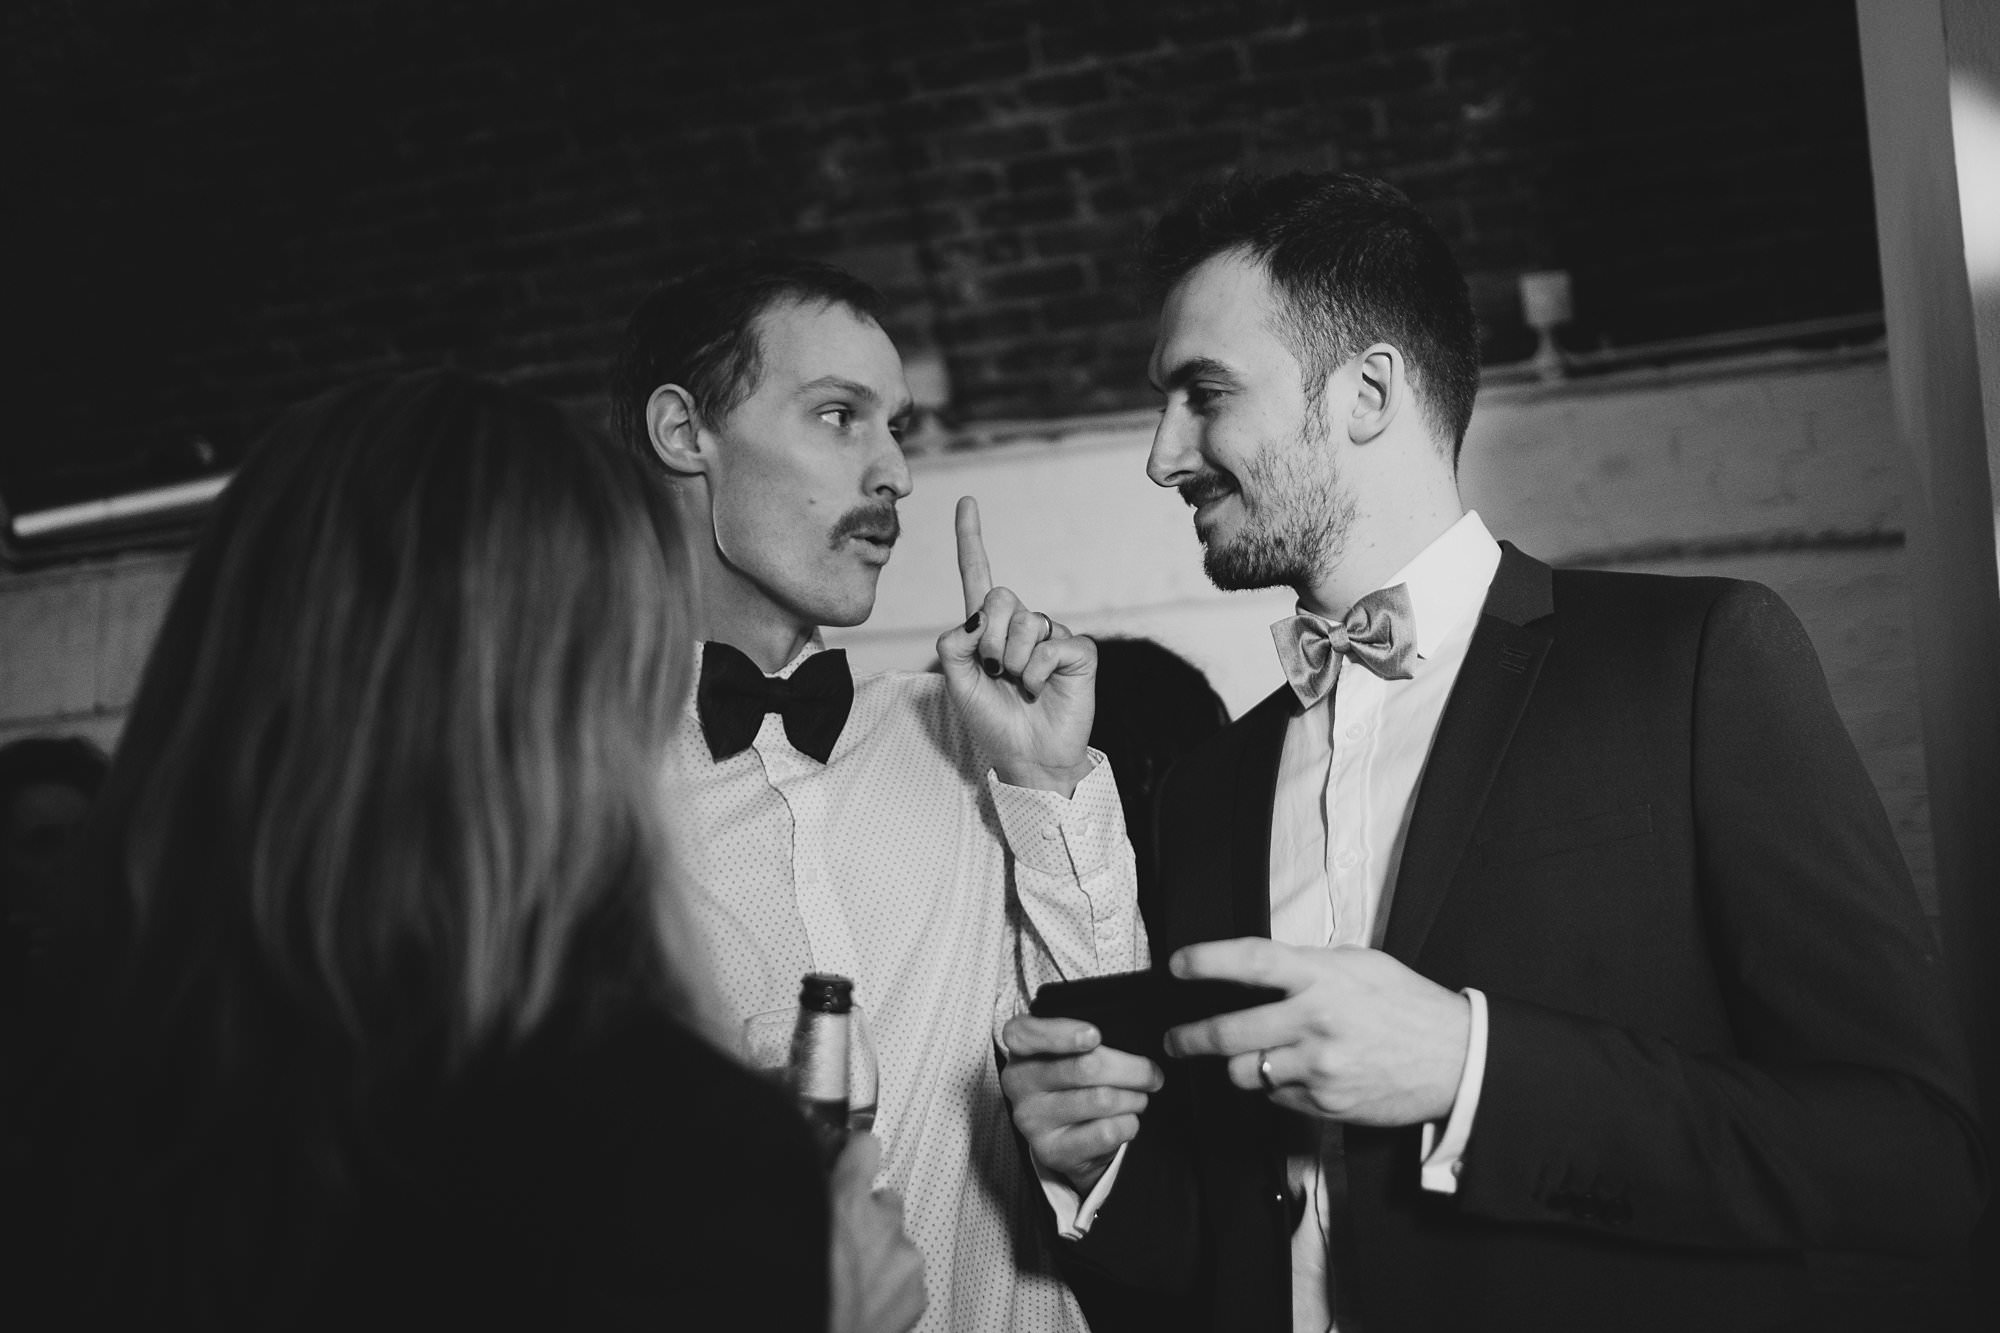 london party photographer hoxton arches 017 - An Elopement Reception at Hoxton Arches